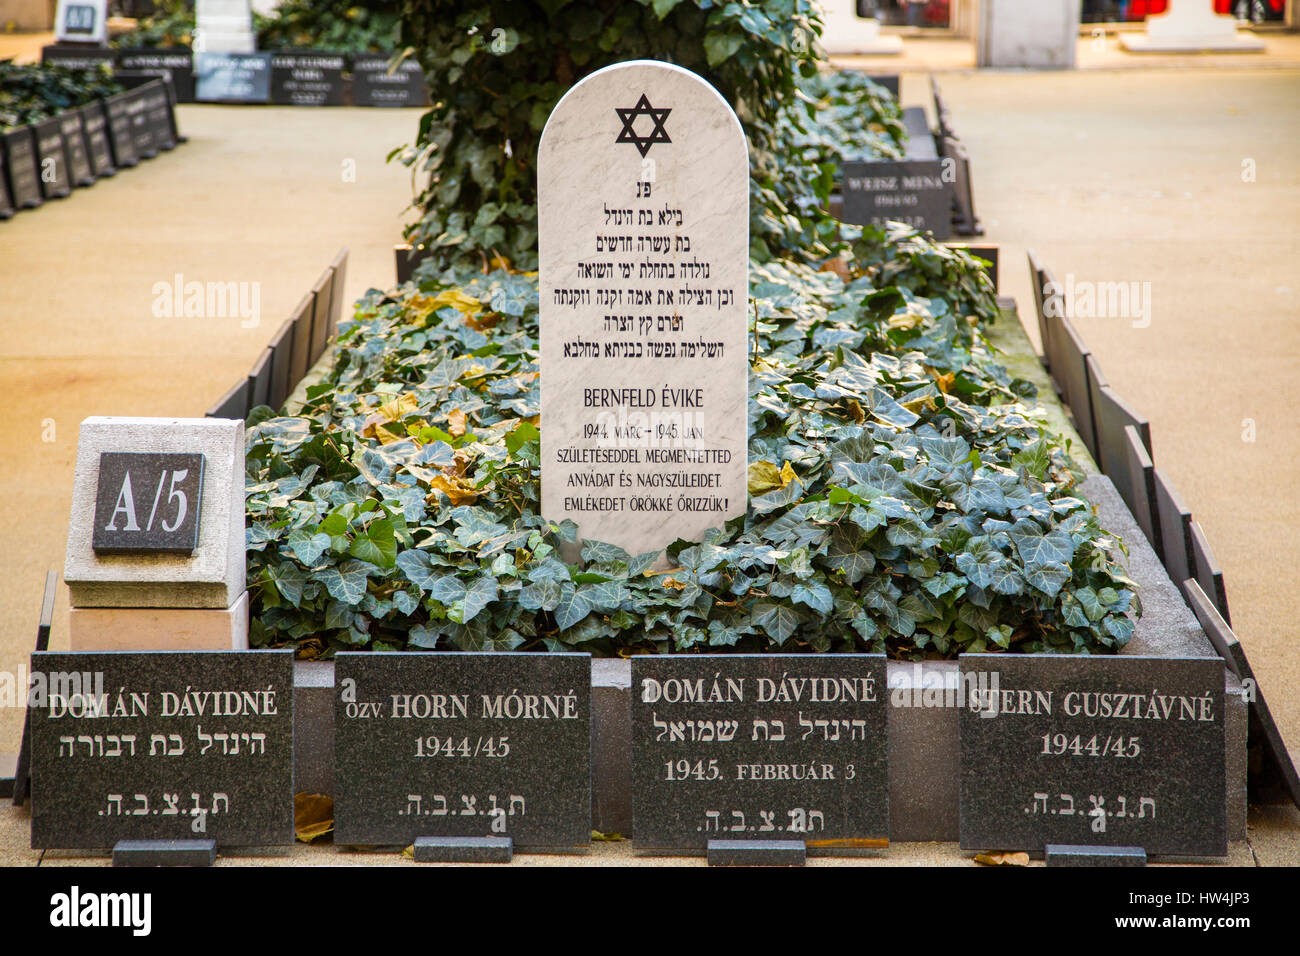 Gravestones in the cemetery. Great Jewish synagogue. Pest. Budapest Hungary, Southeast Europe - Stock Image